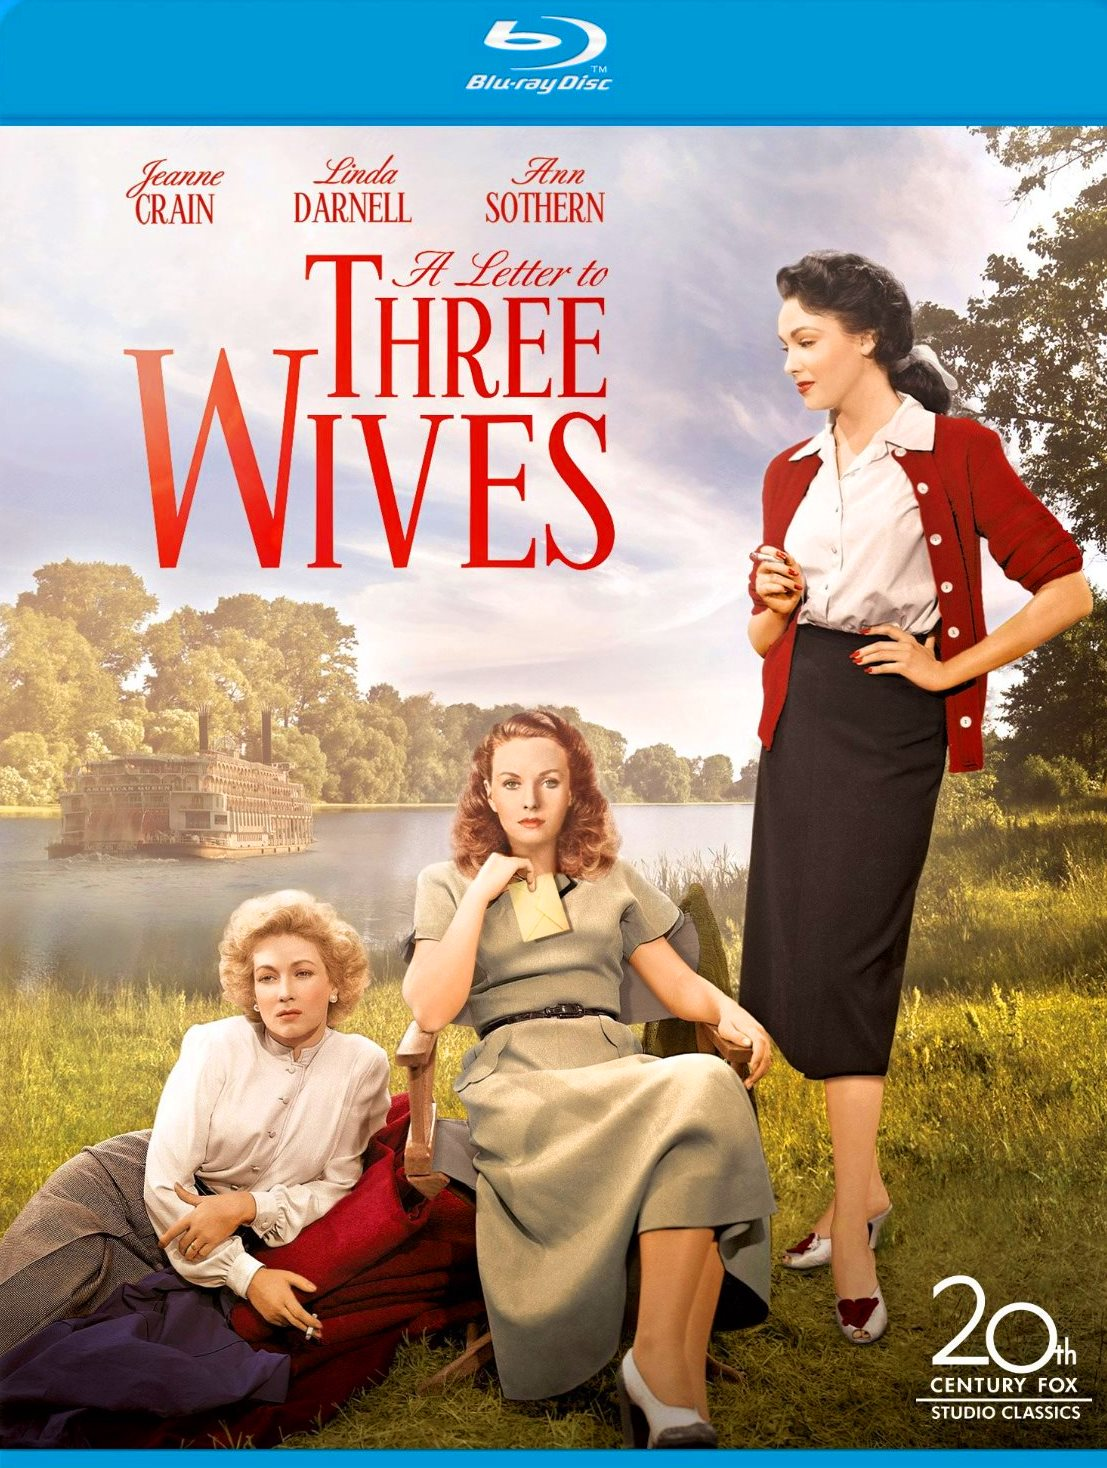 NIXPIX - DVD & BLU-RAY Reviews: A LETTER TO THREE WIVES: Blu-ray (2oth ...